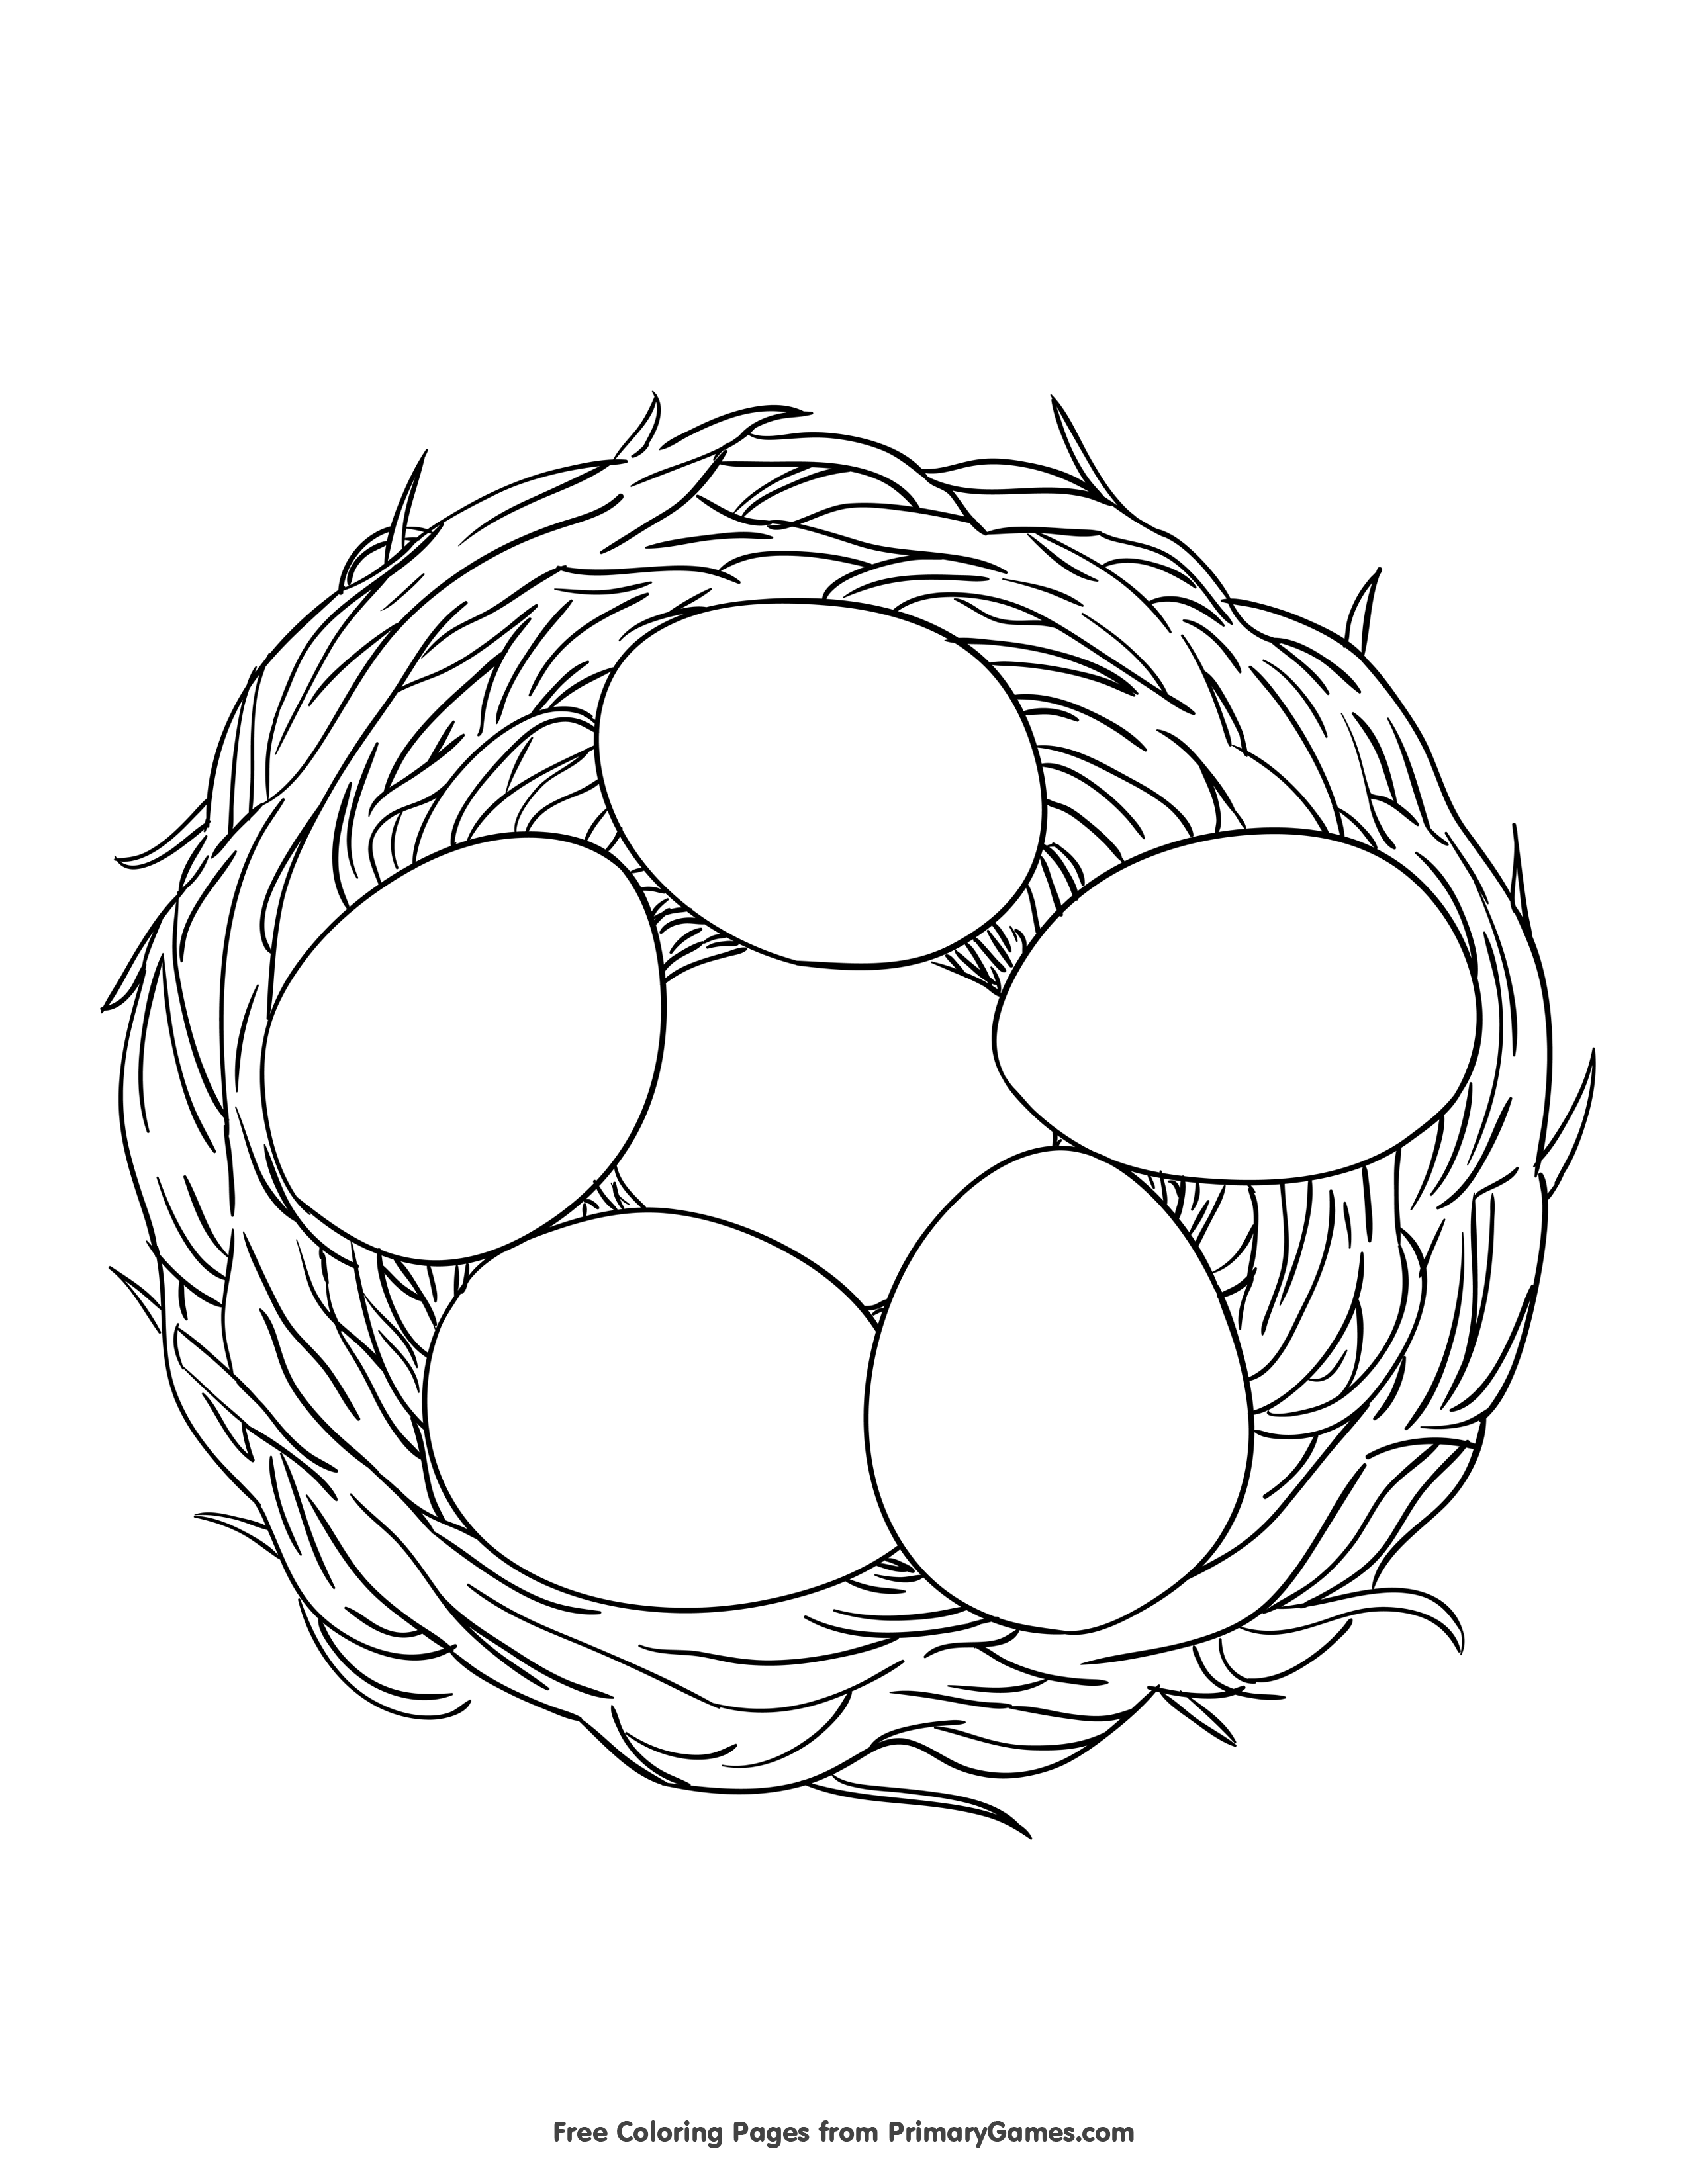 Eggs In A Nest Coloring Page Free Printable Pdf From